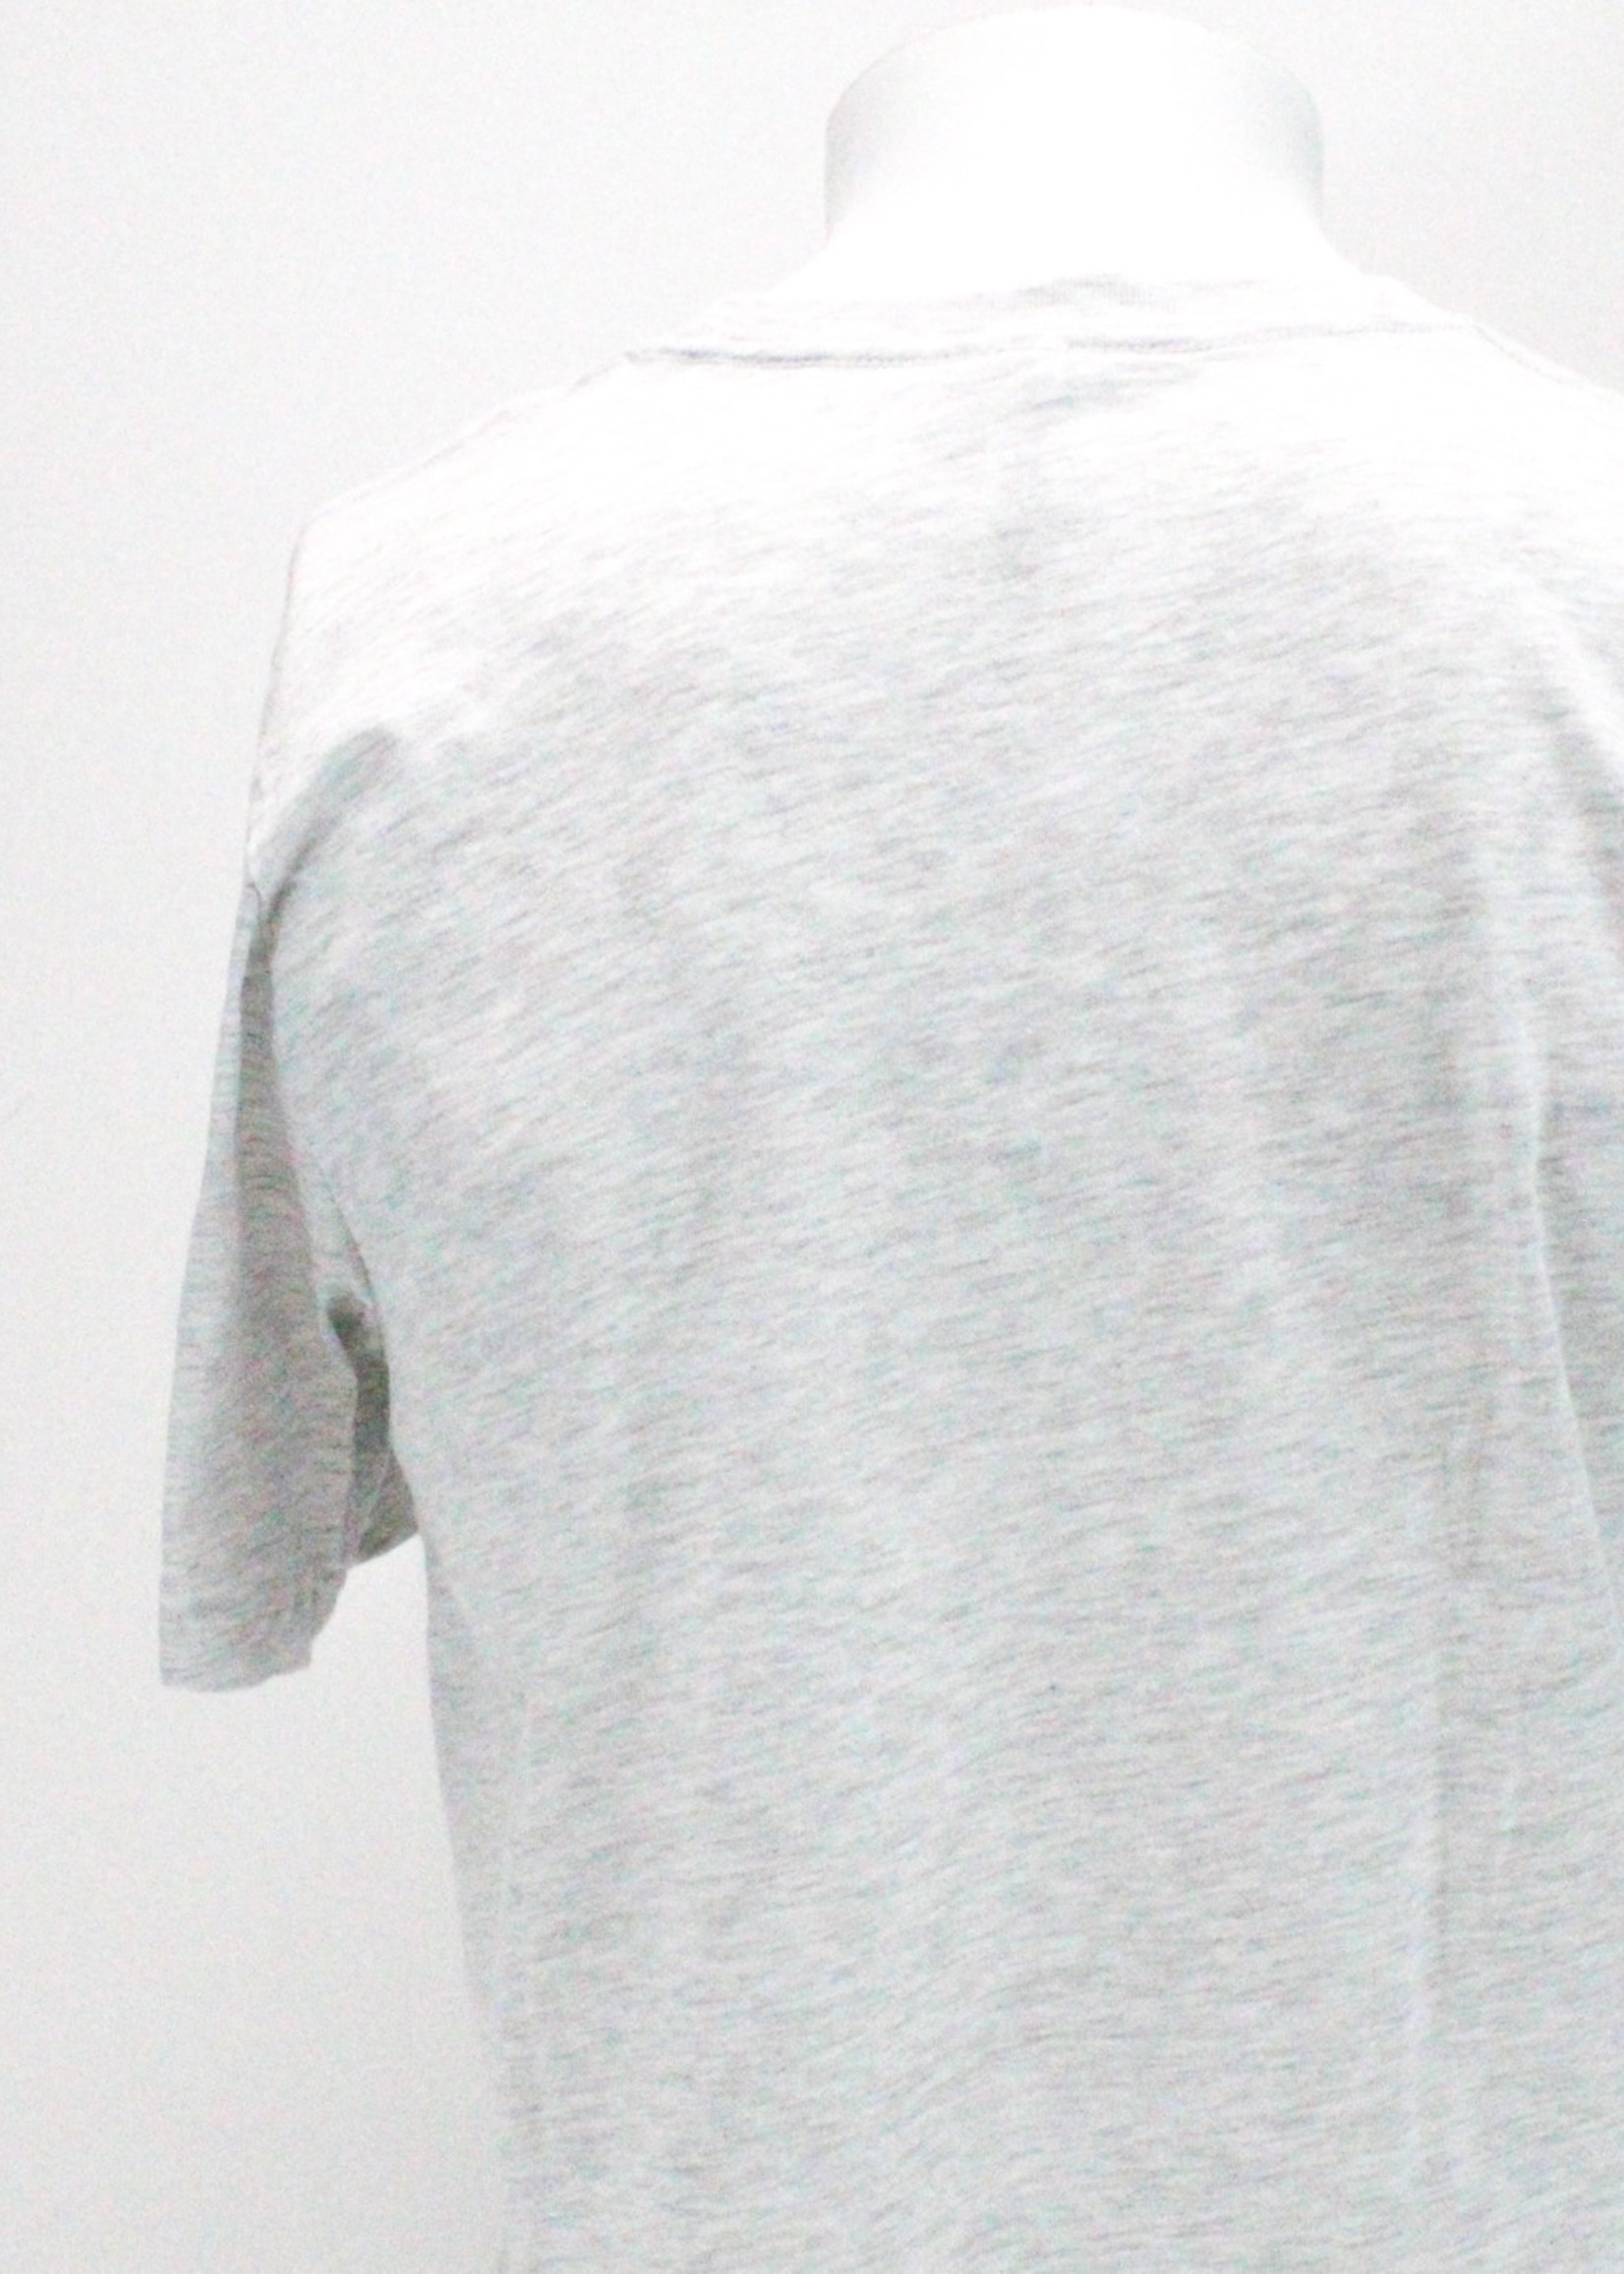 Clearance - BYUH Seasiders Cotton Tee with HI Islands